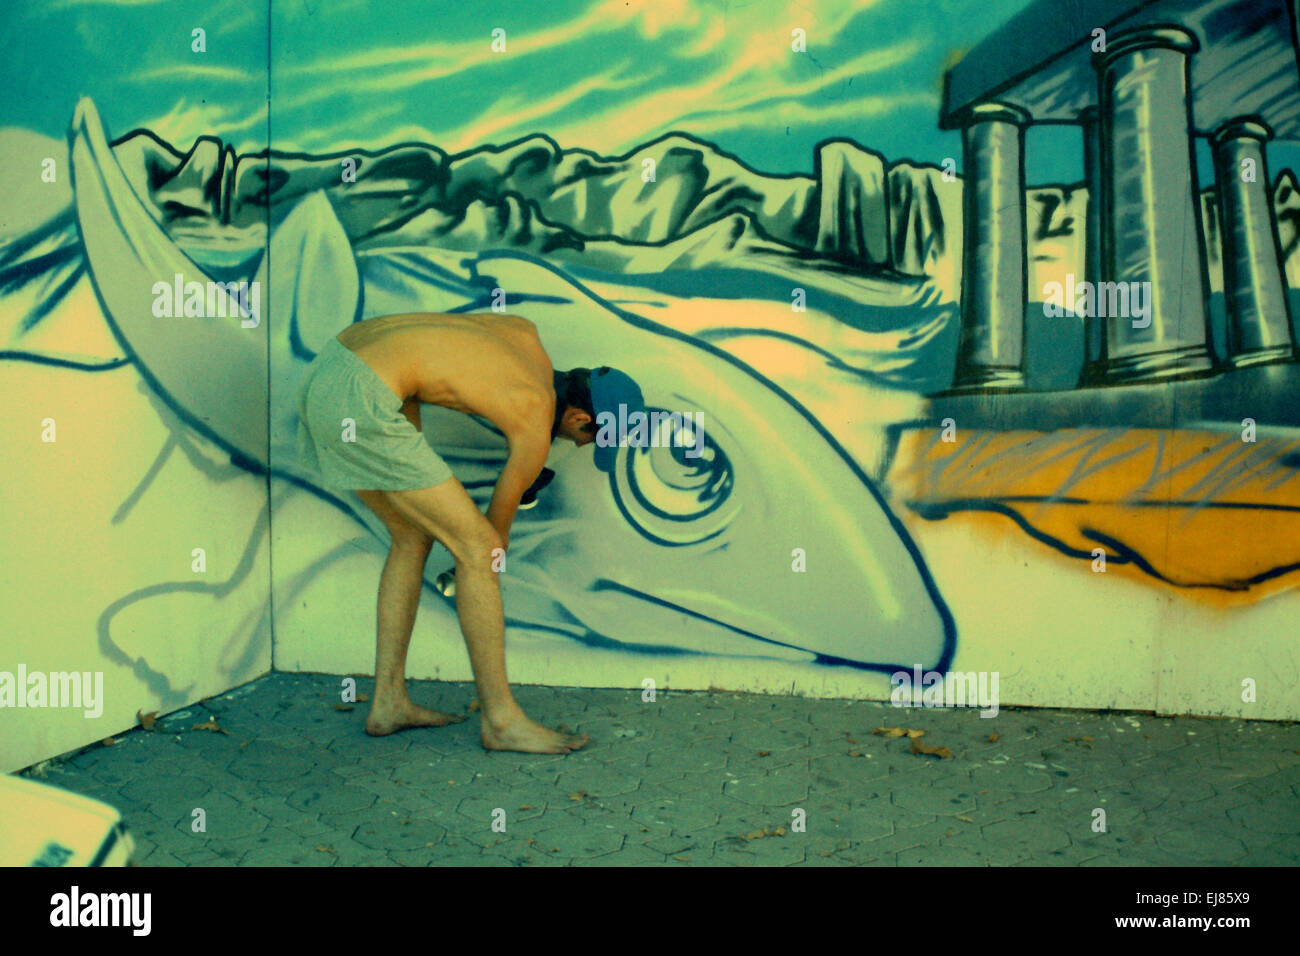 Graffiti Creator Stockfoto Bild 80085553 Alamy